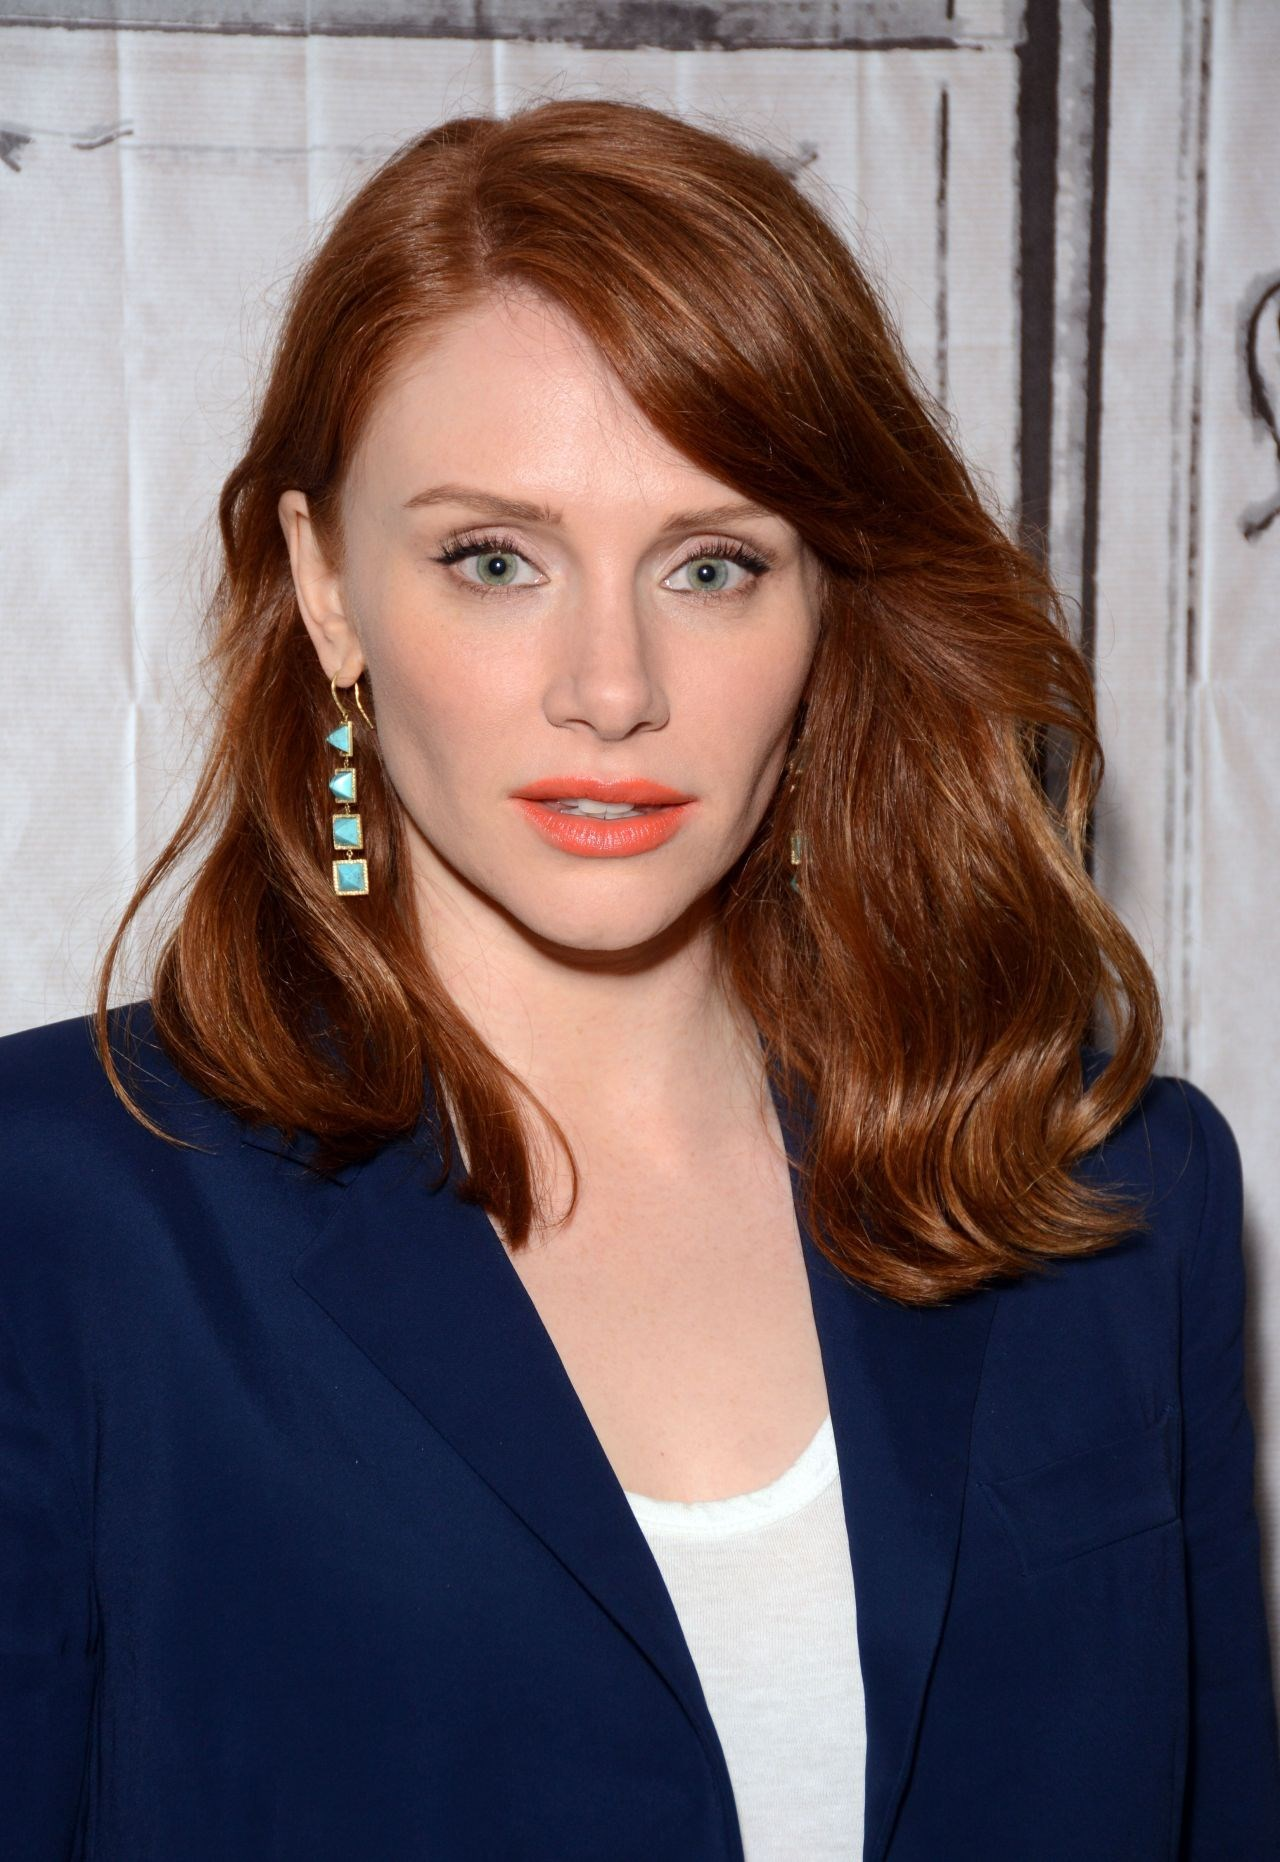 Bryce Dallas Howard Known People Famous People News